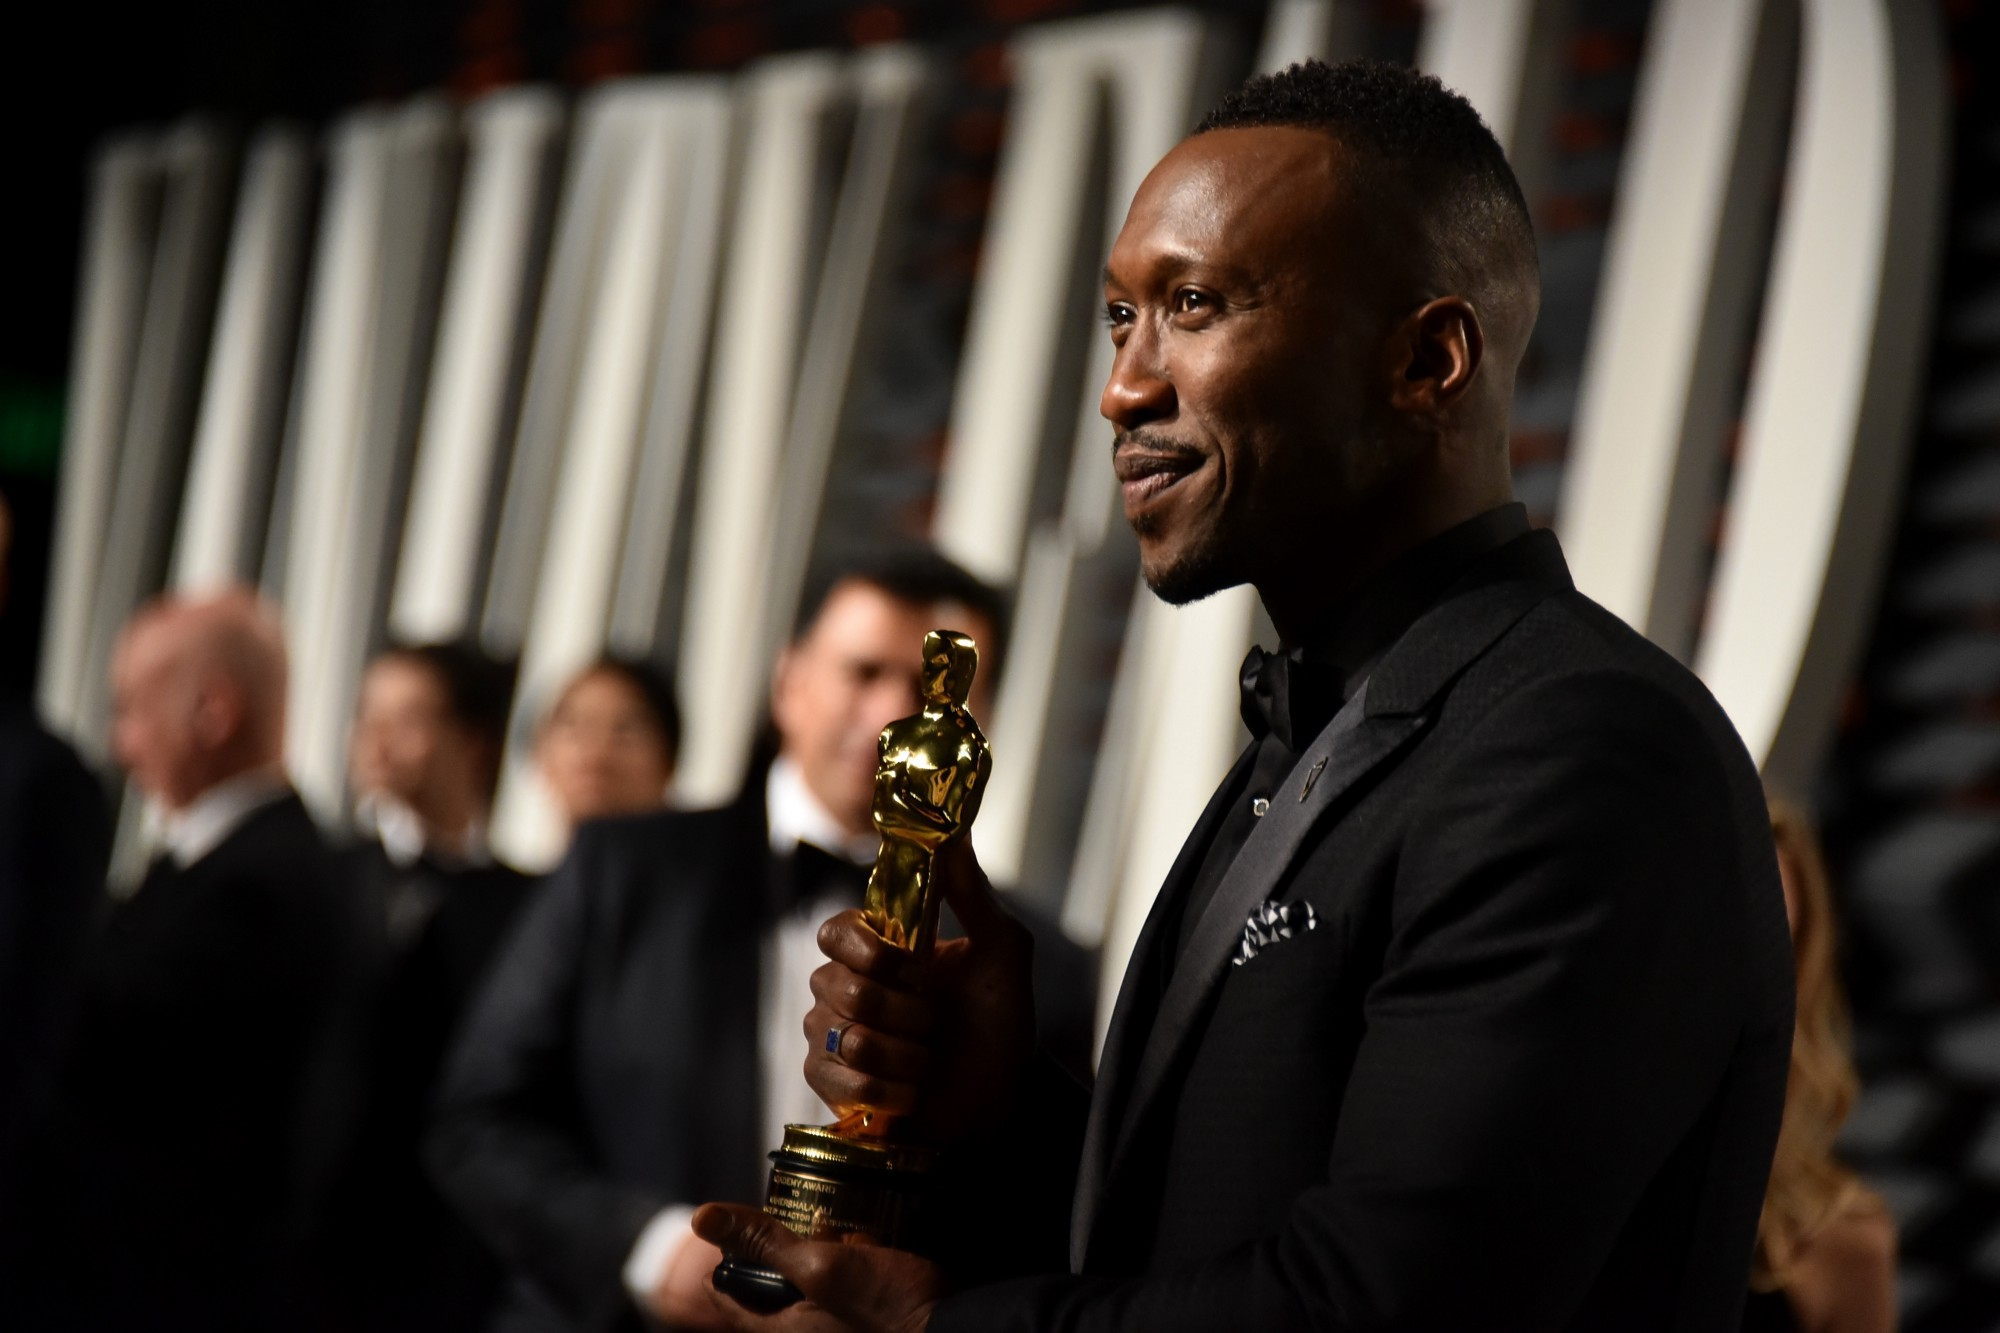 This Oscar victor will be starring in True Detective's third season